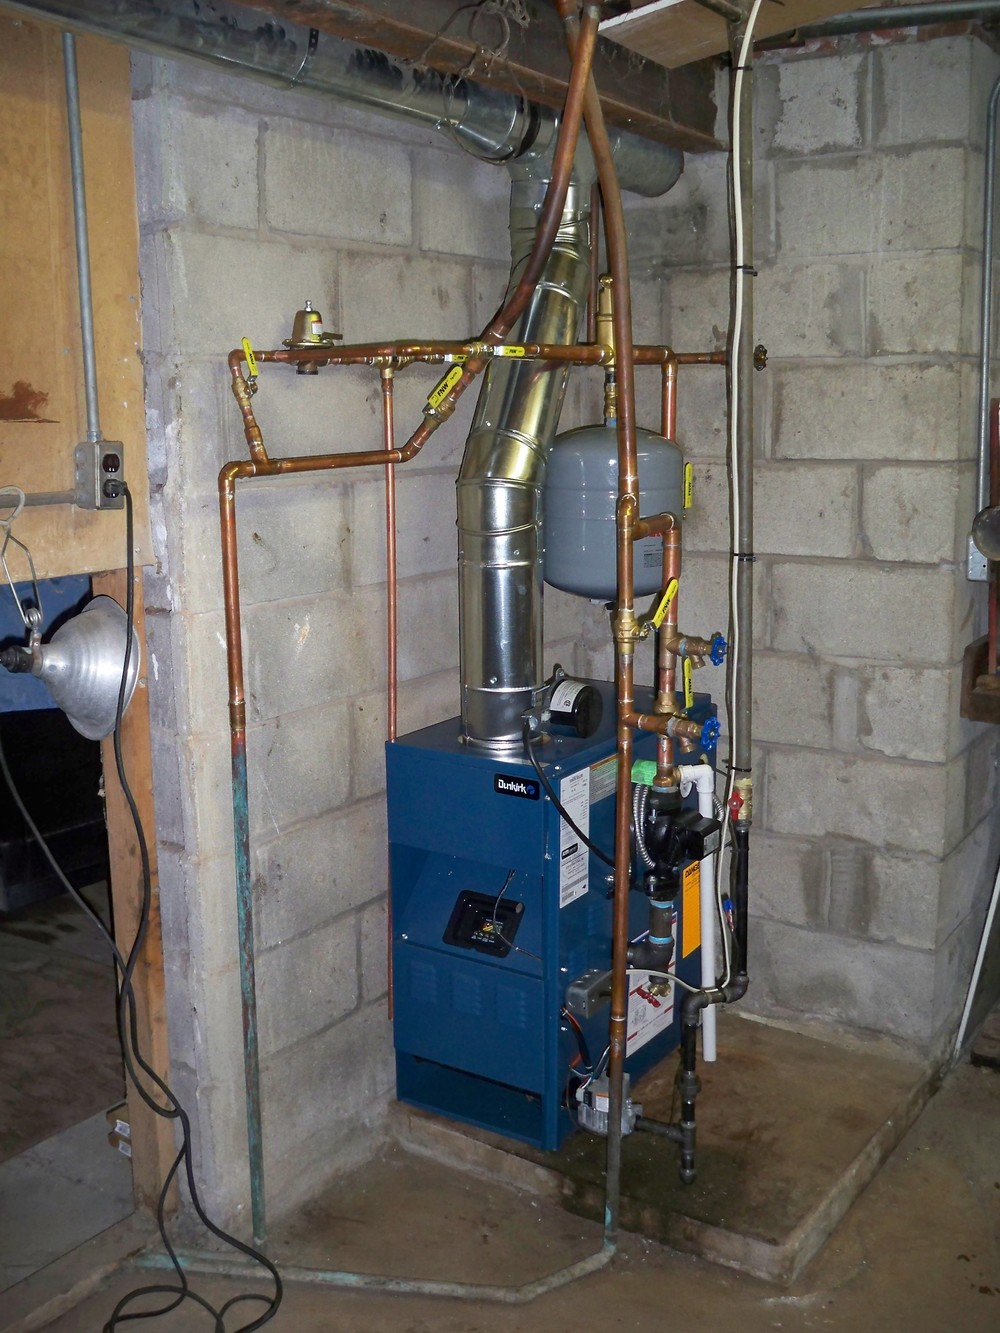 Dunkirk boiler installed in Greece, NY